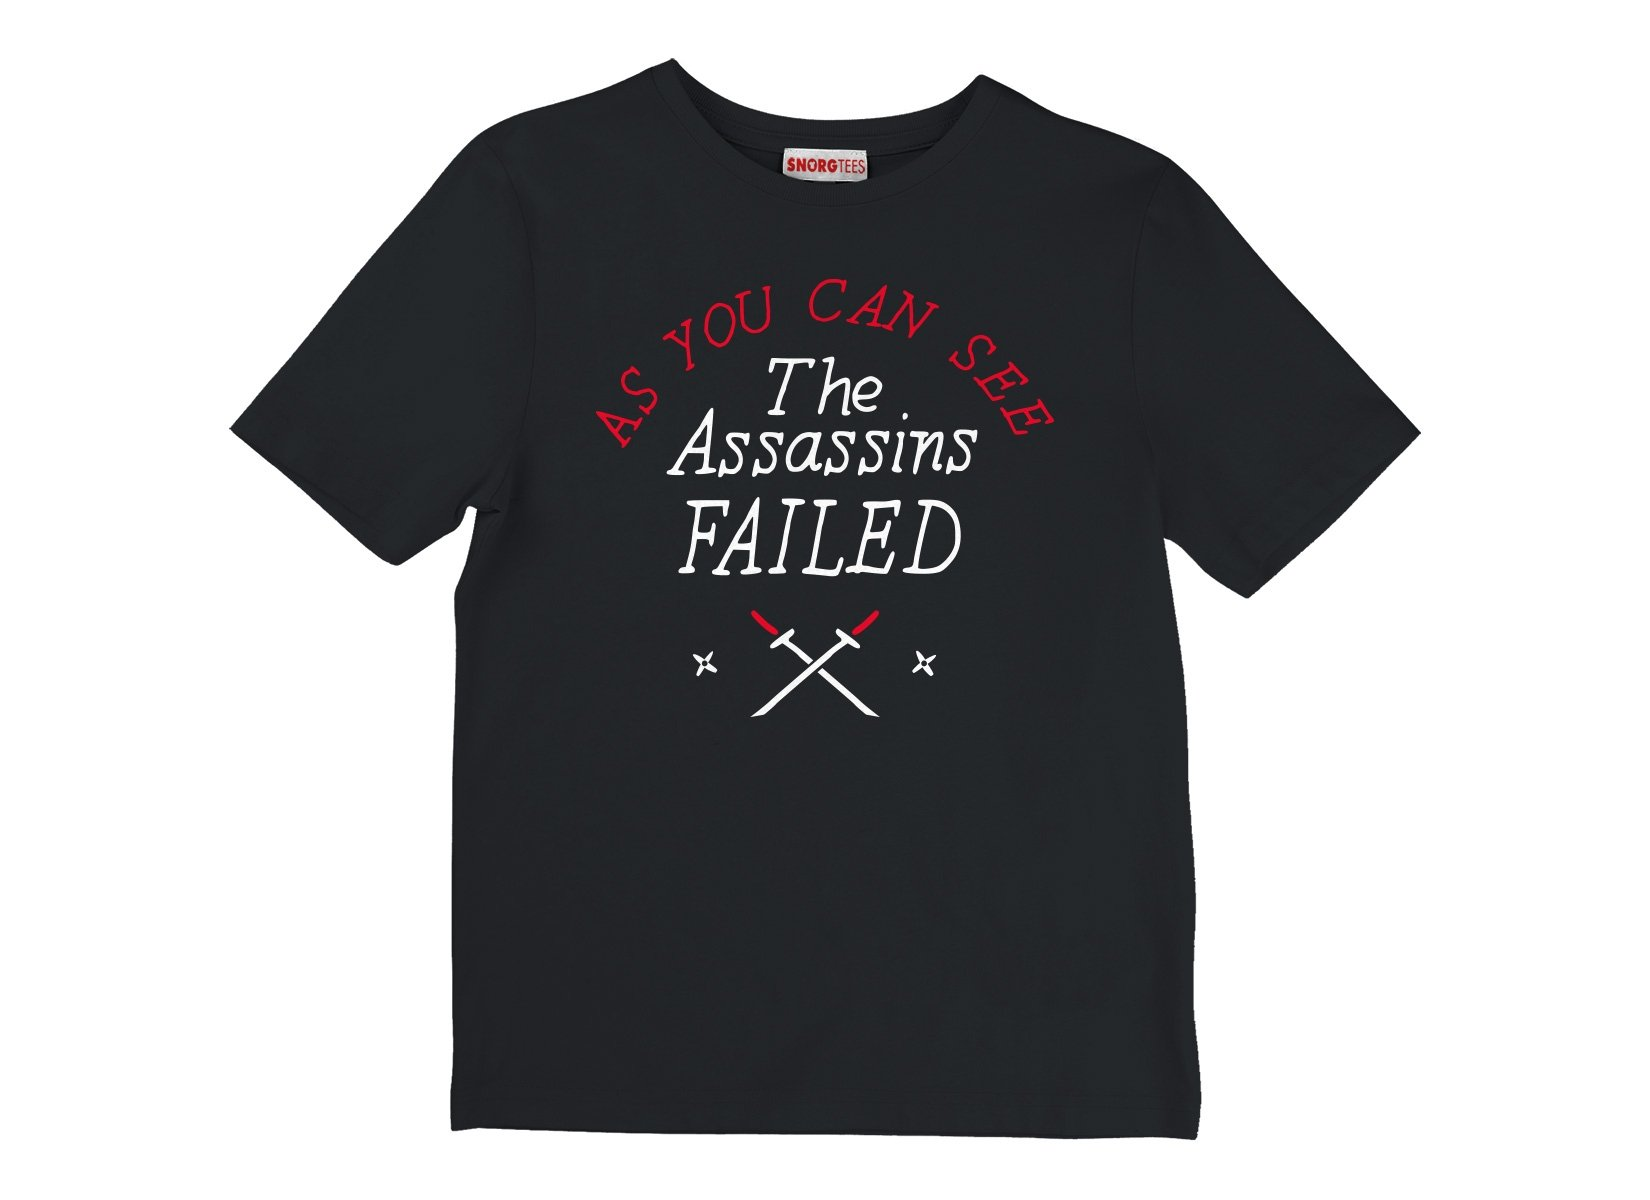 The Assassins Failed on Kids T-Shirt